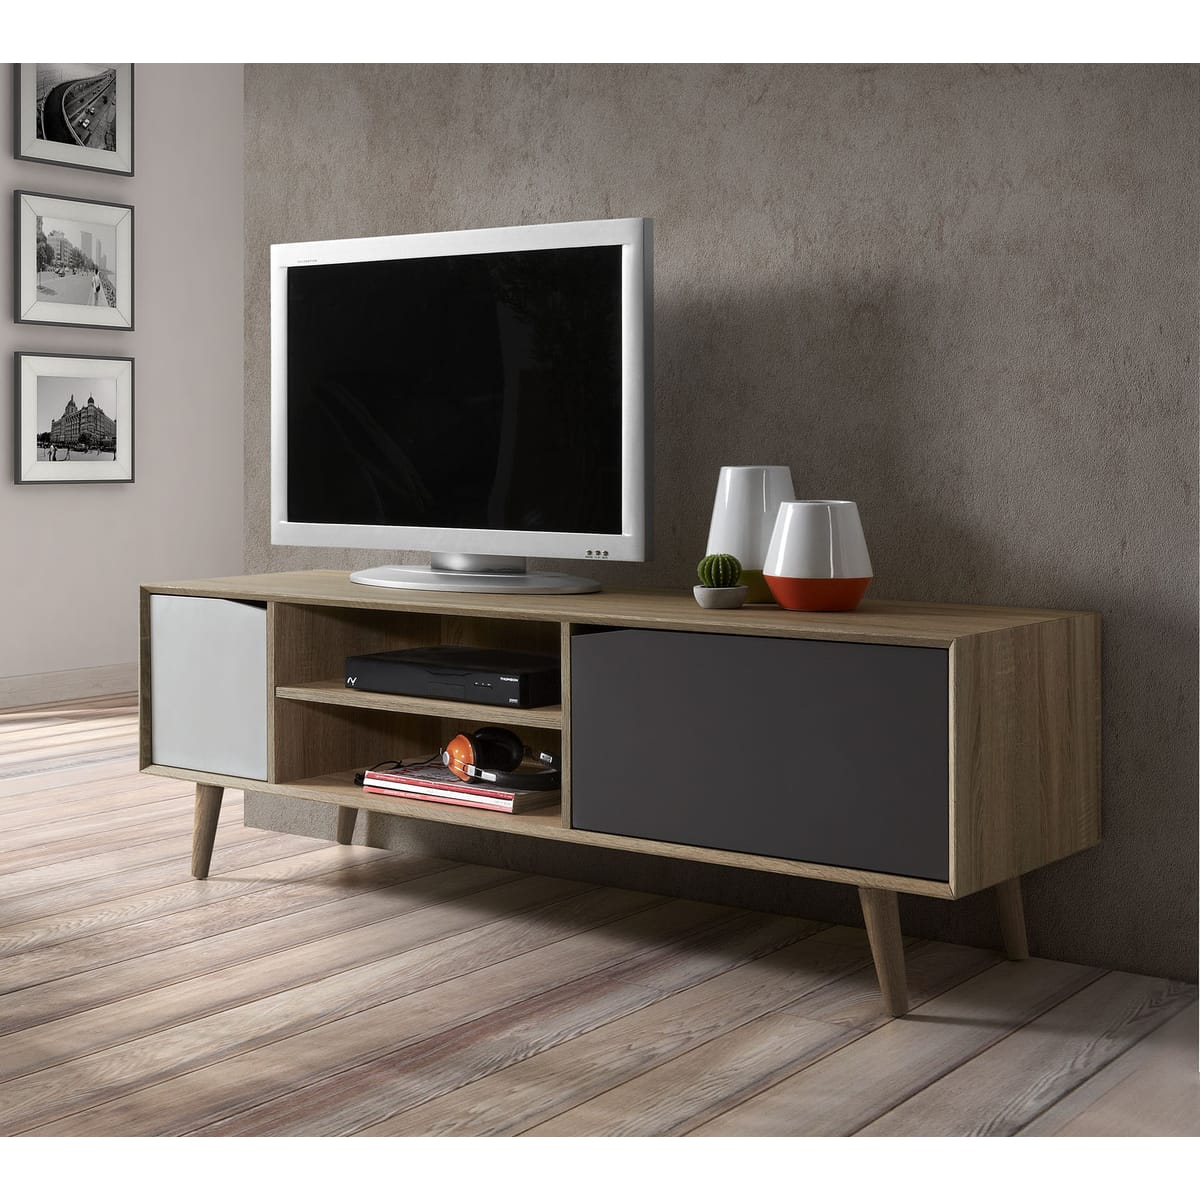 meuble tv solde maison et mobilier d 39 int rieur. Black Bedroom Furniture Sets. Home Design Ideas